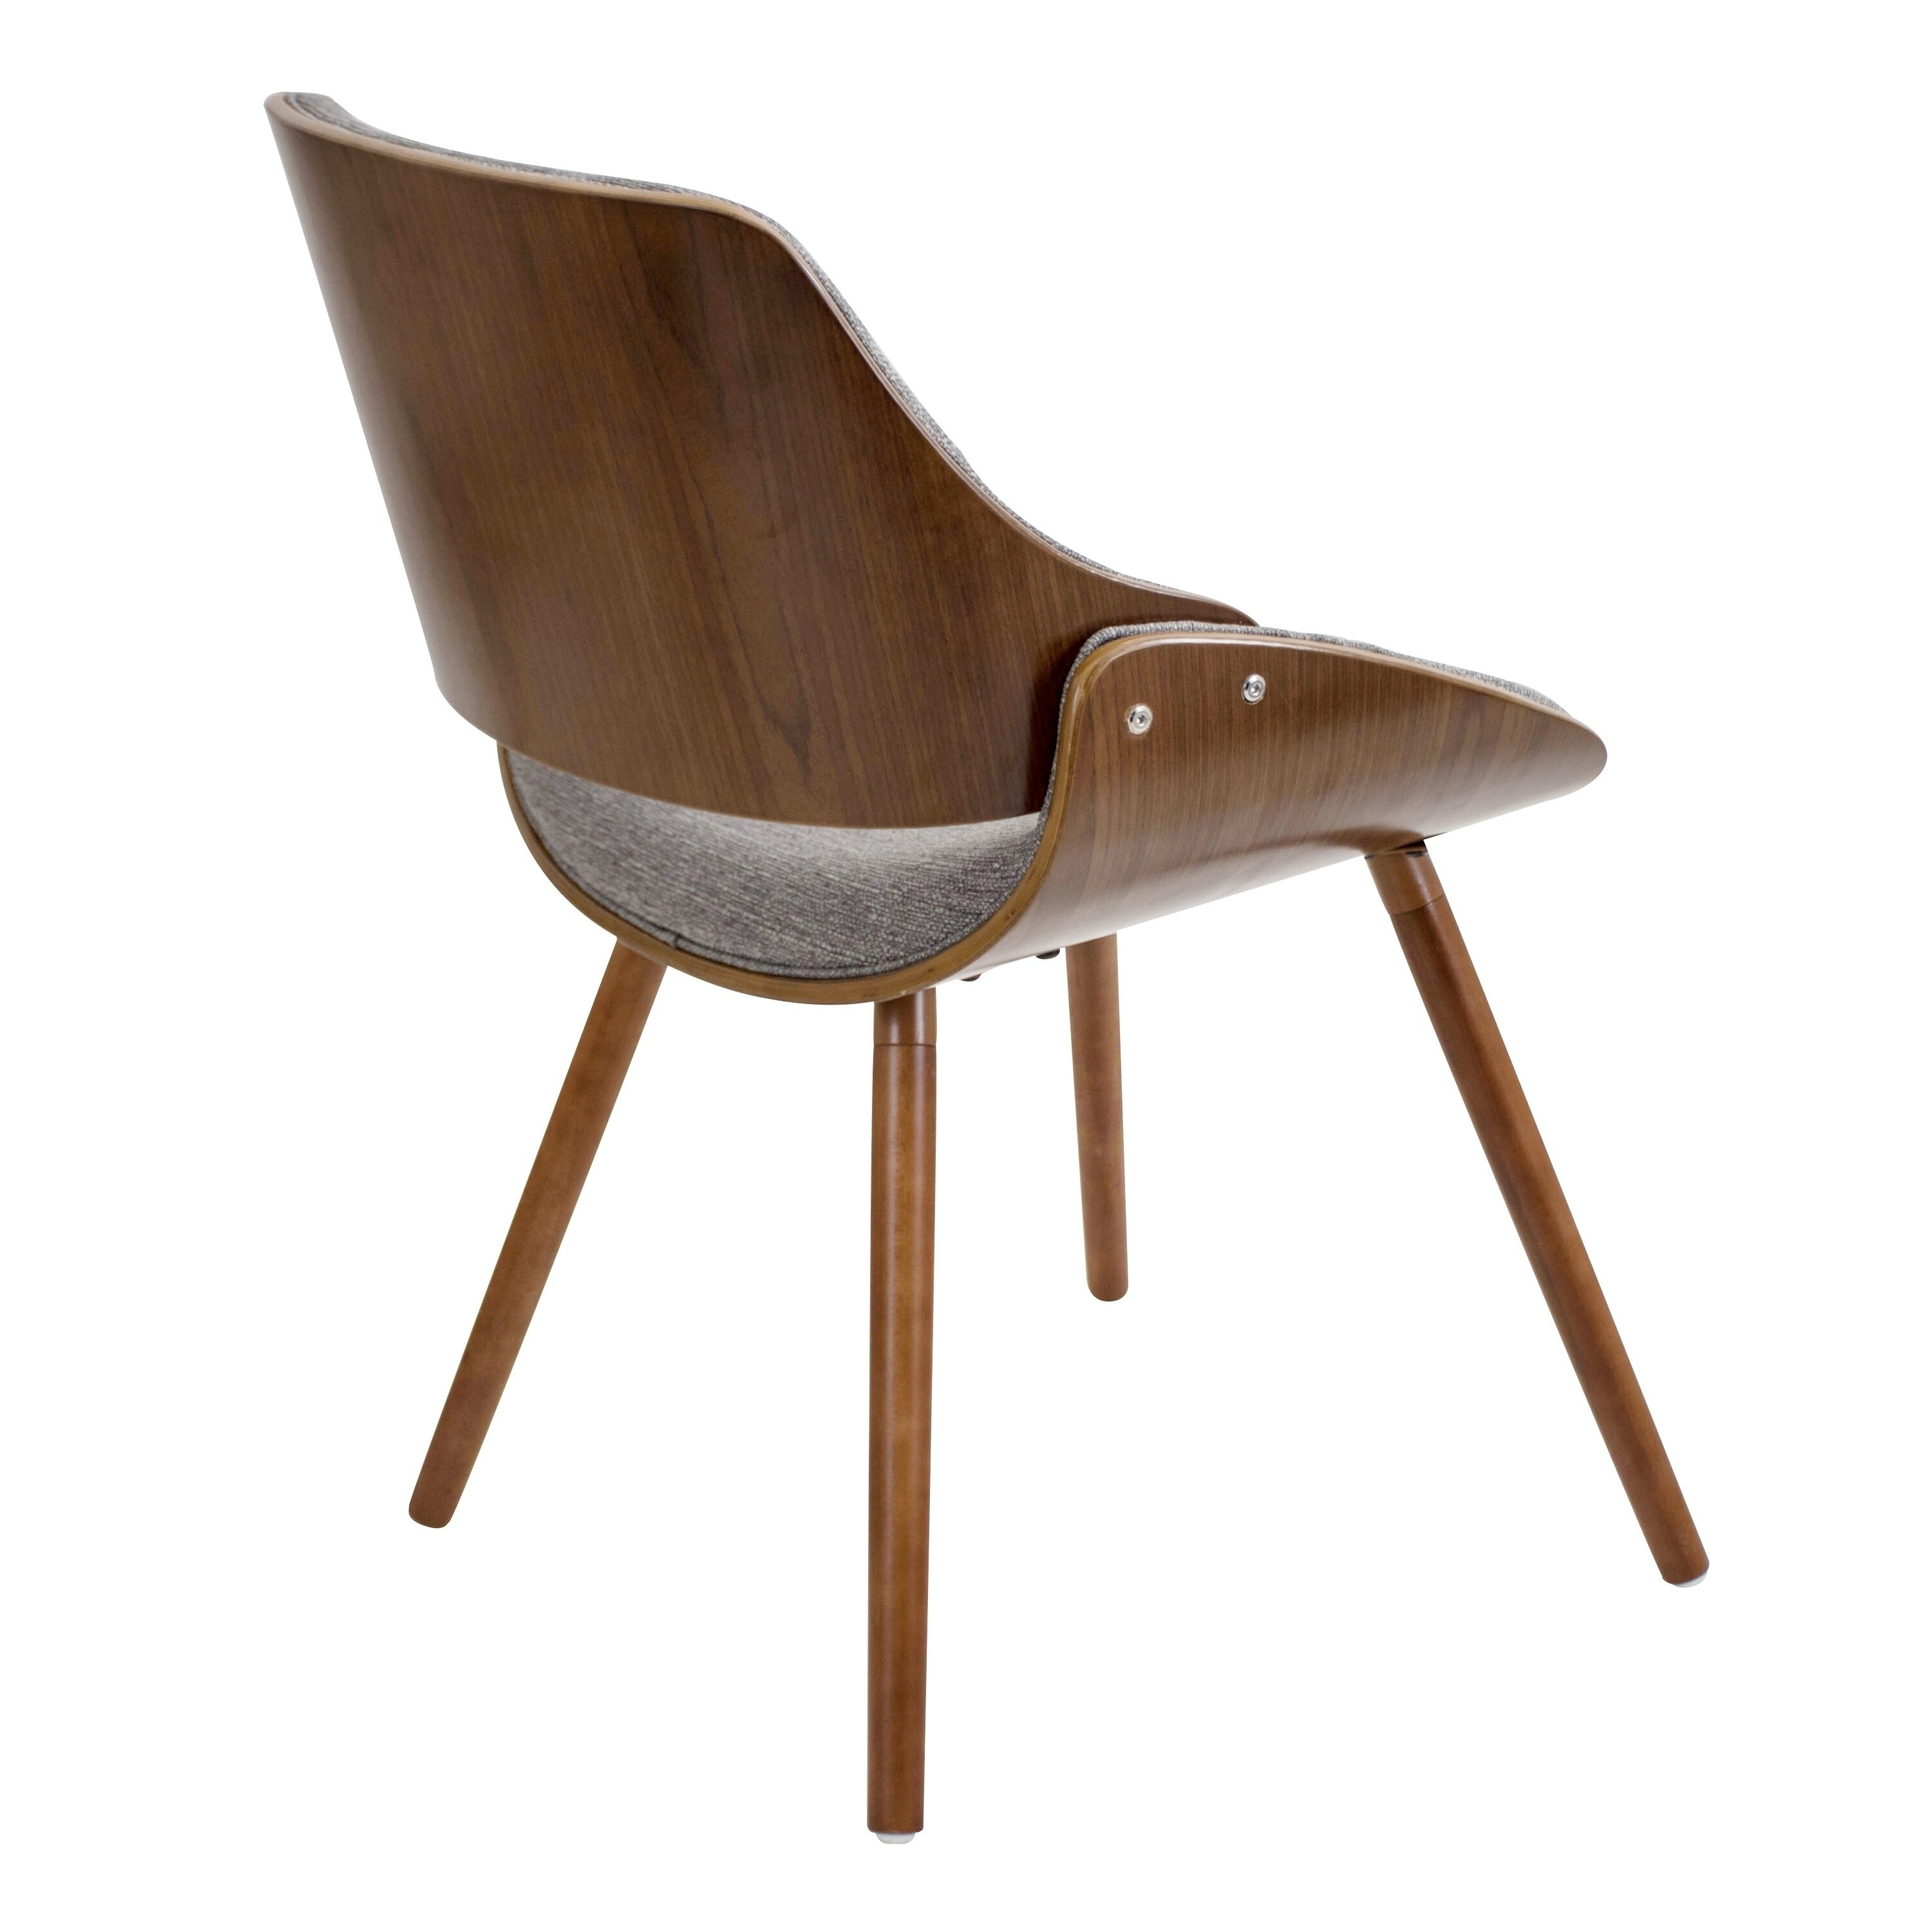 Shop carson carrington vanersborg walnut mid century modern chair on sale free shipping today overstock com 19856283